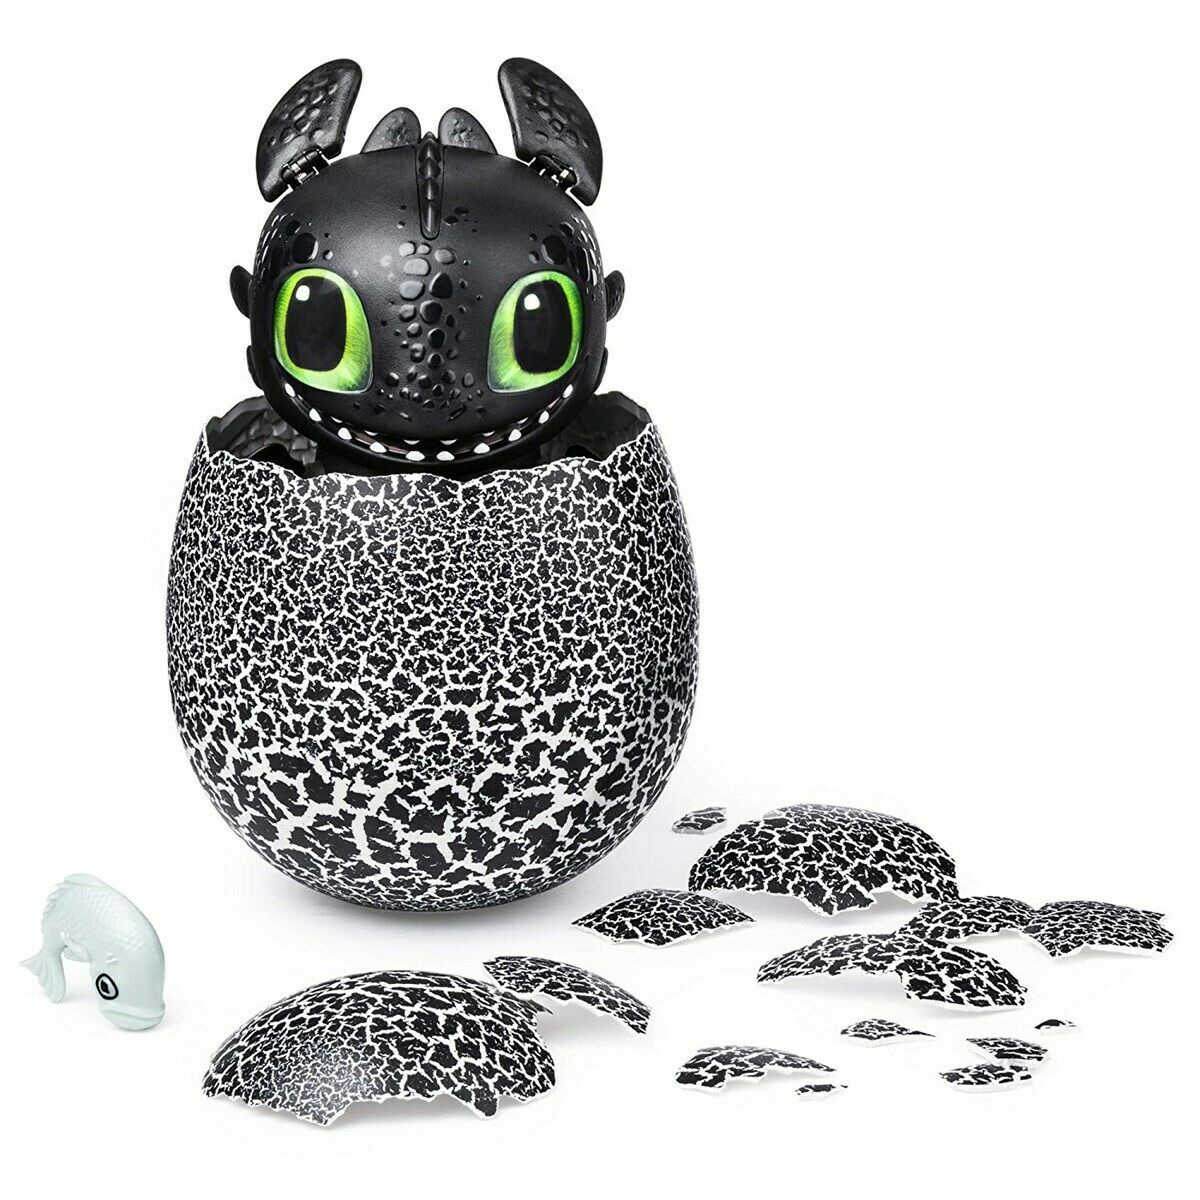 How to train your Dragon - Hatching Dragon (6046183)